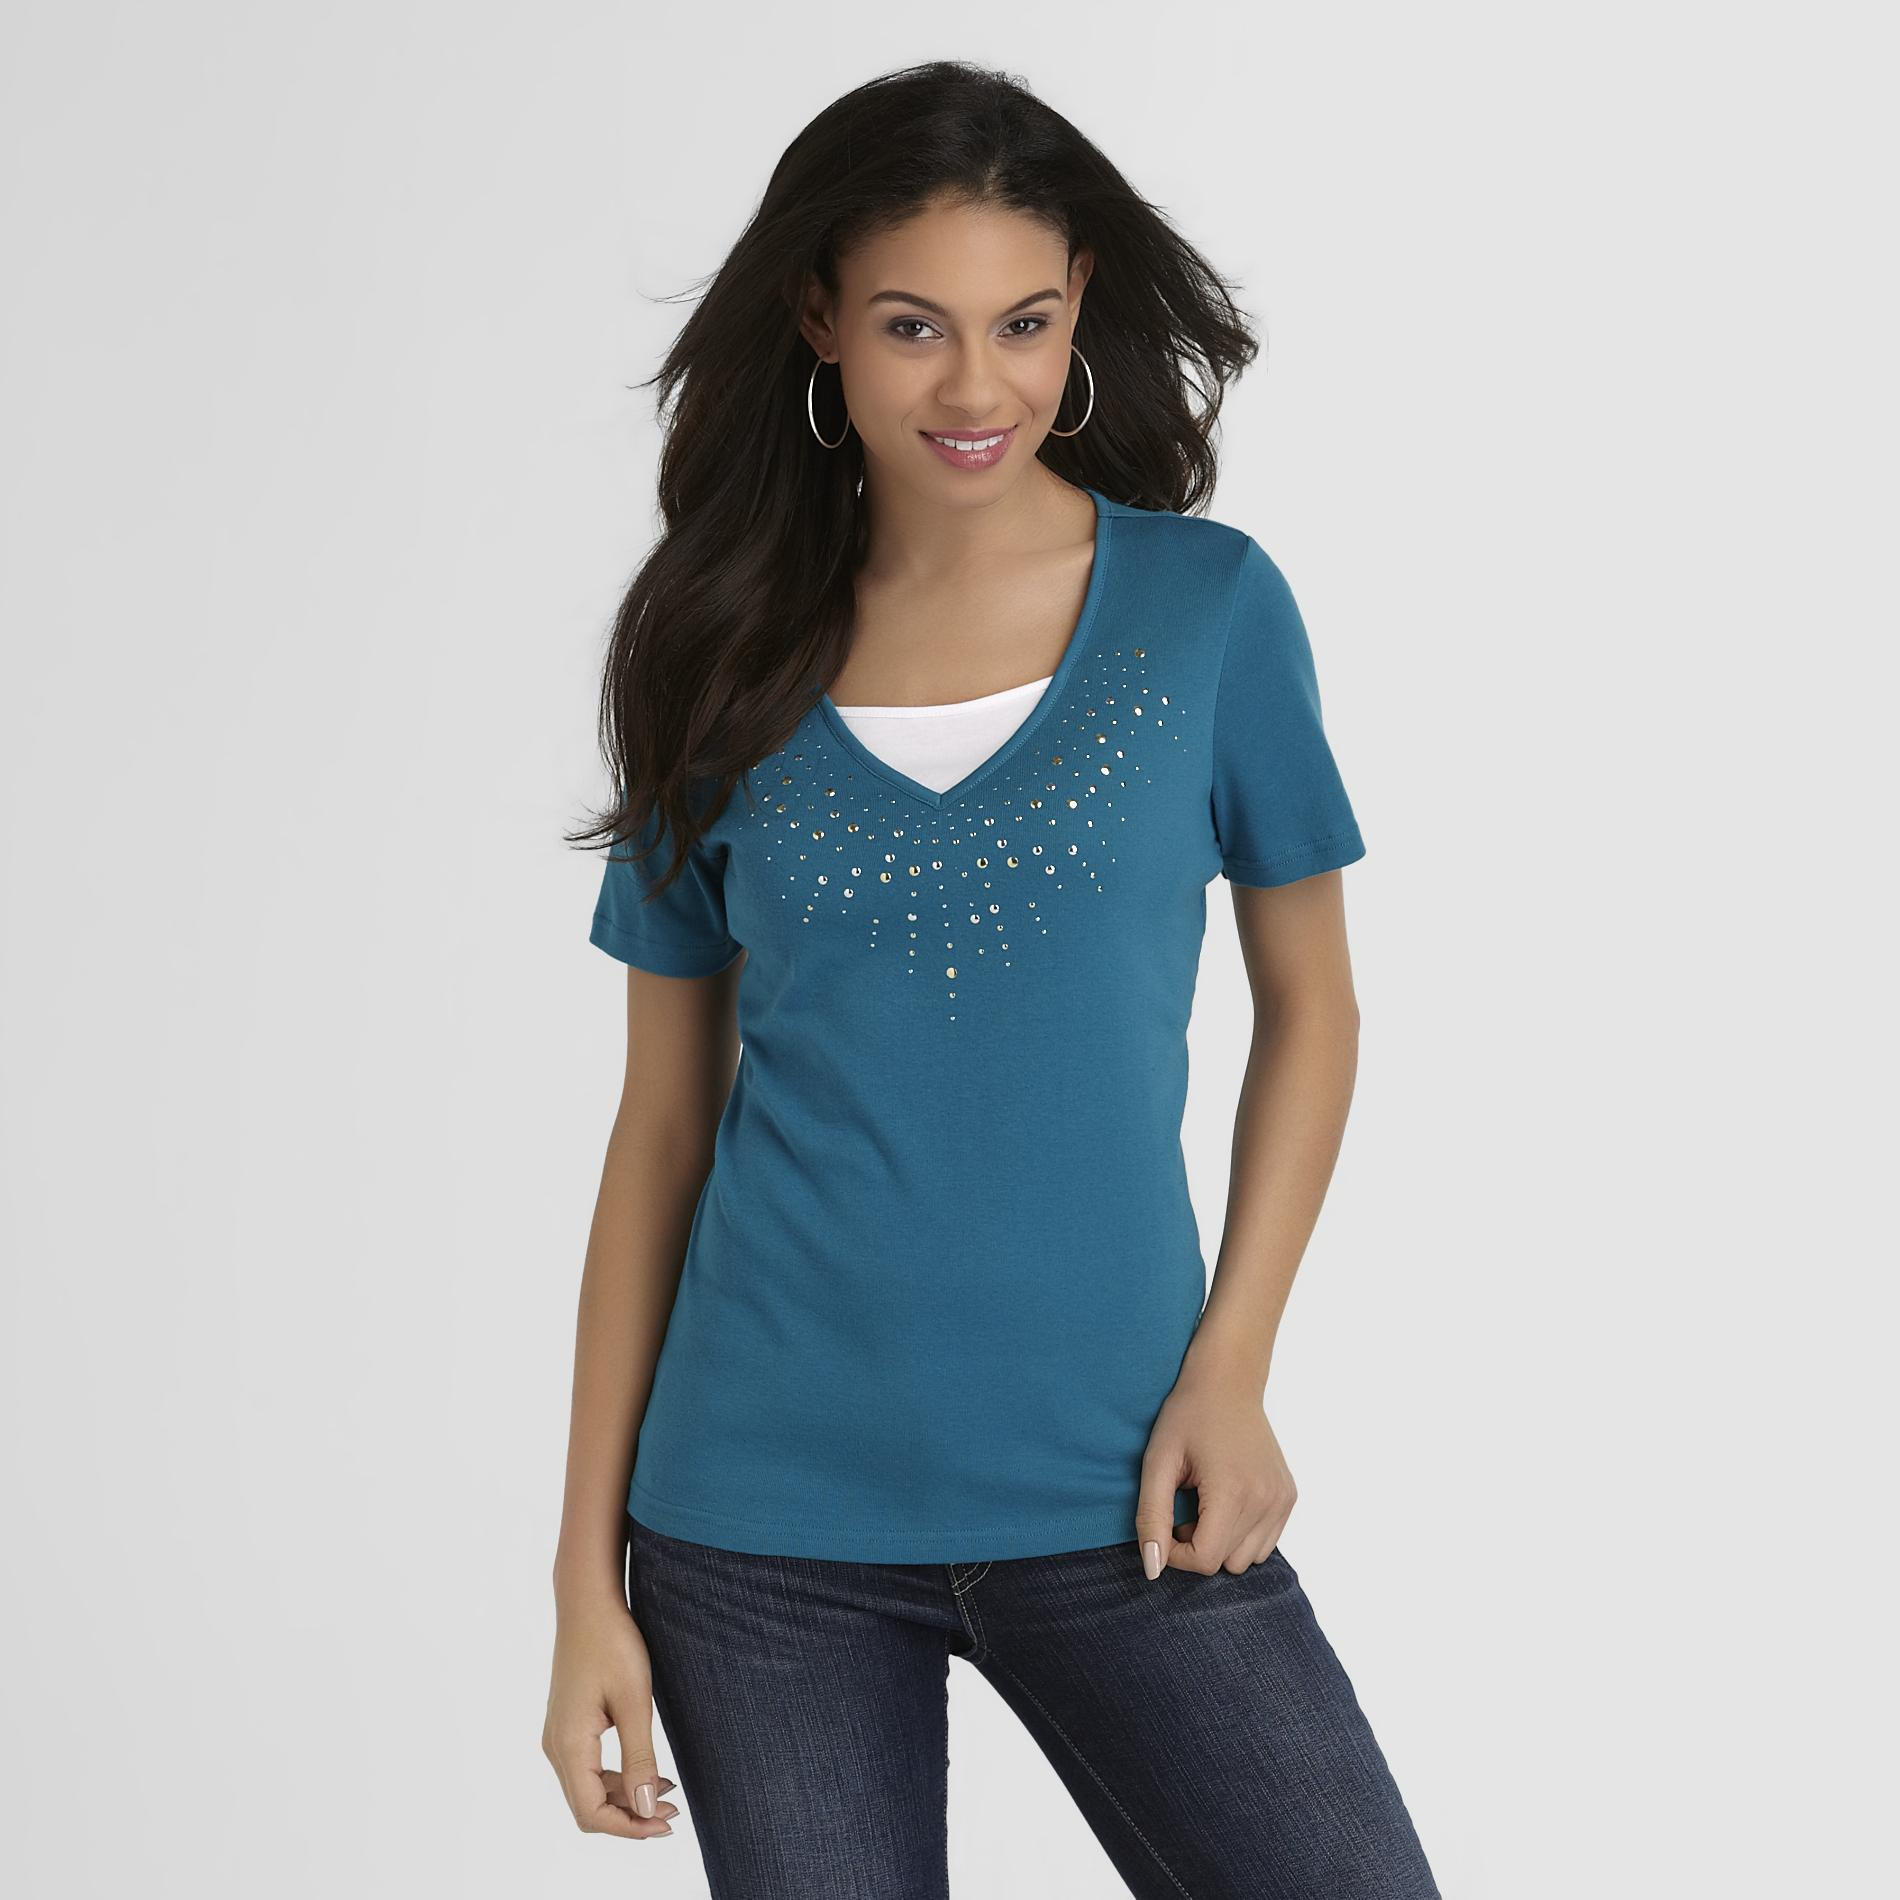 Basic Editions Women's Studded T-Shirt at Kmart.com